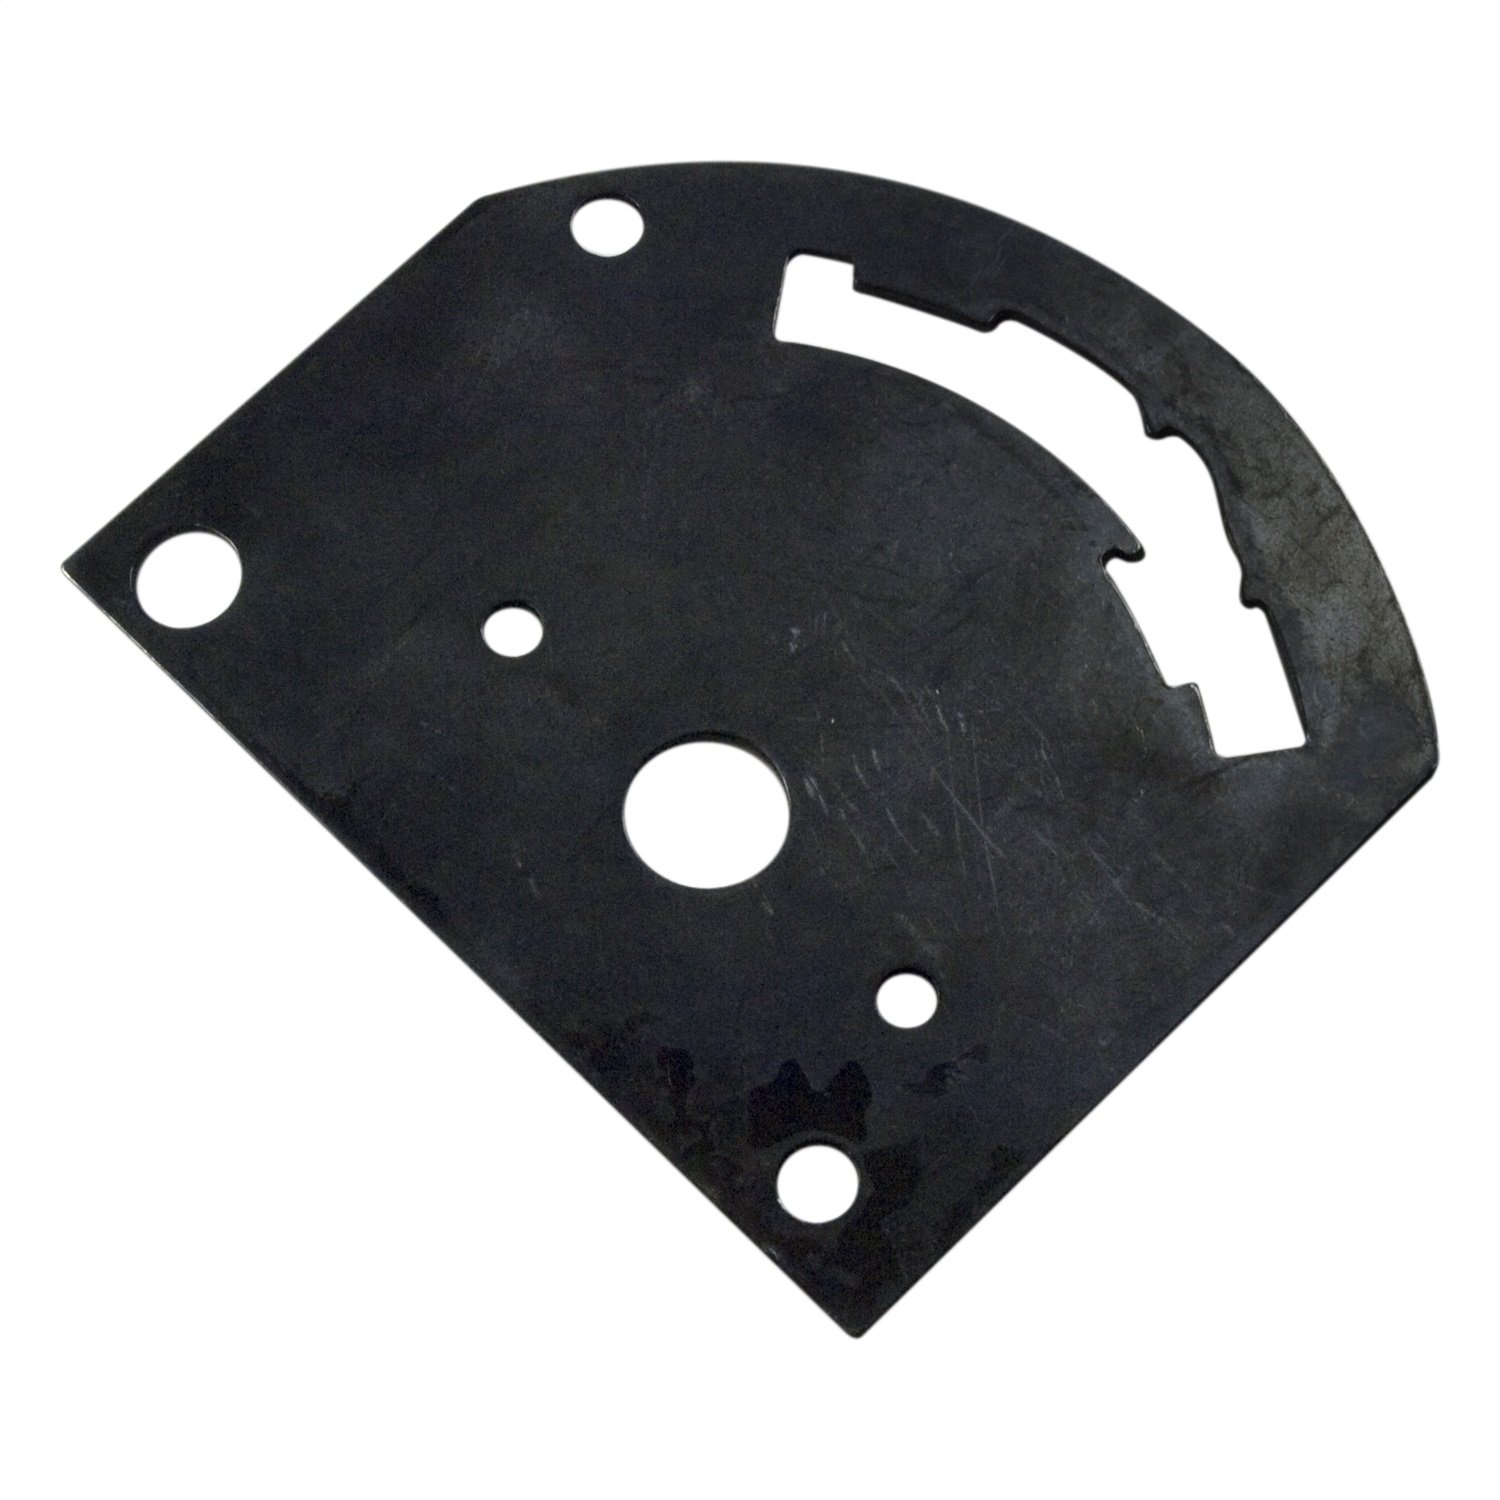 B&M 80712 4-Speed Forward Pattern Gate Plate for Pro Stick Automatic Shifter